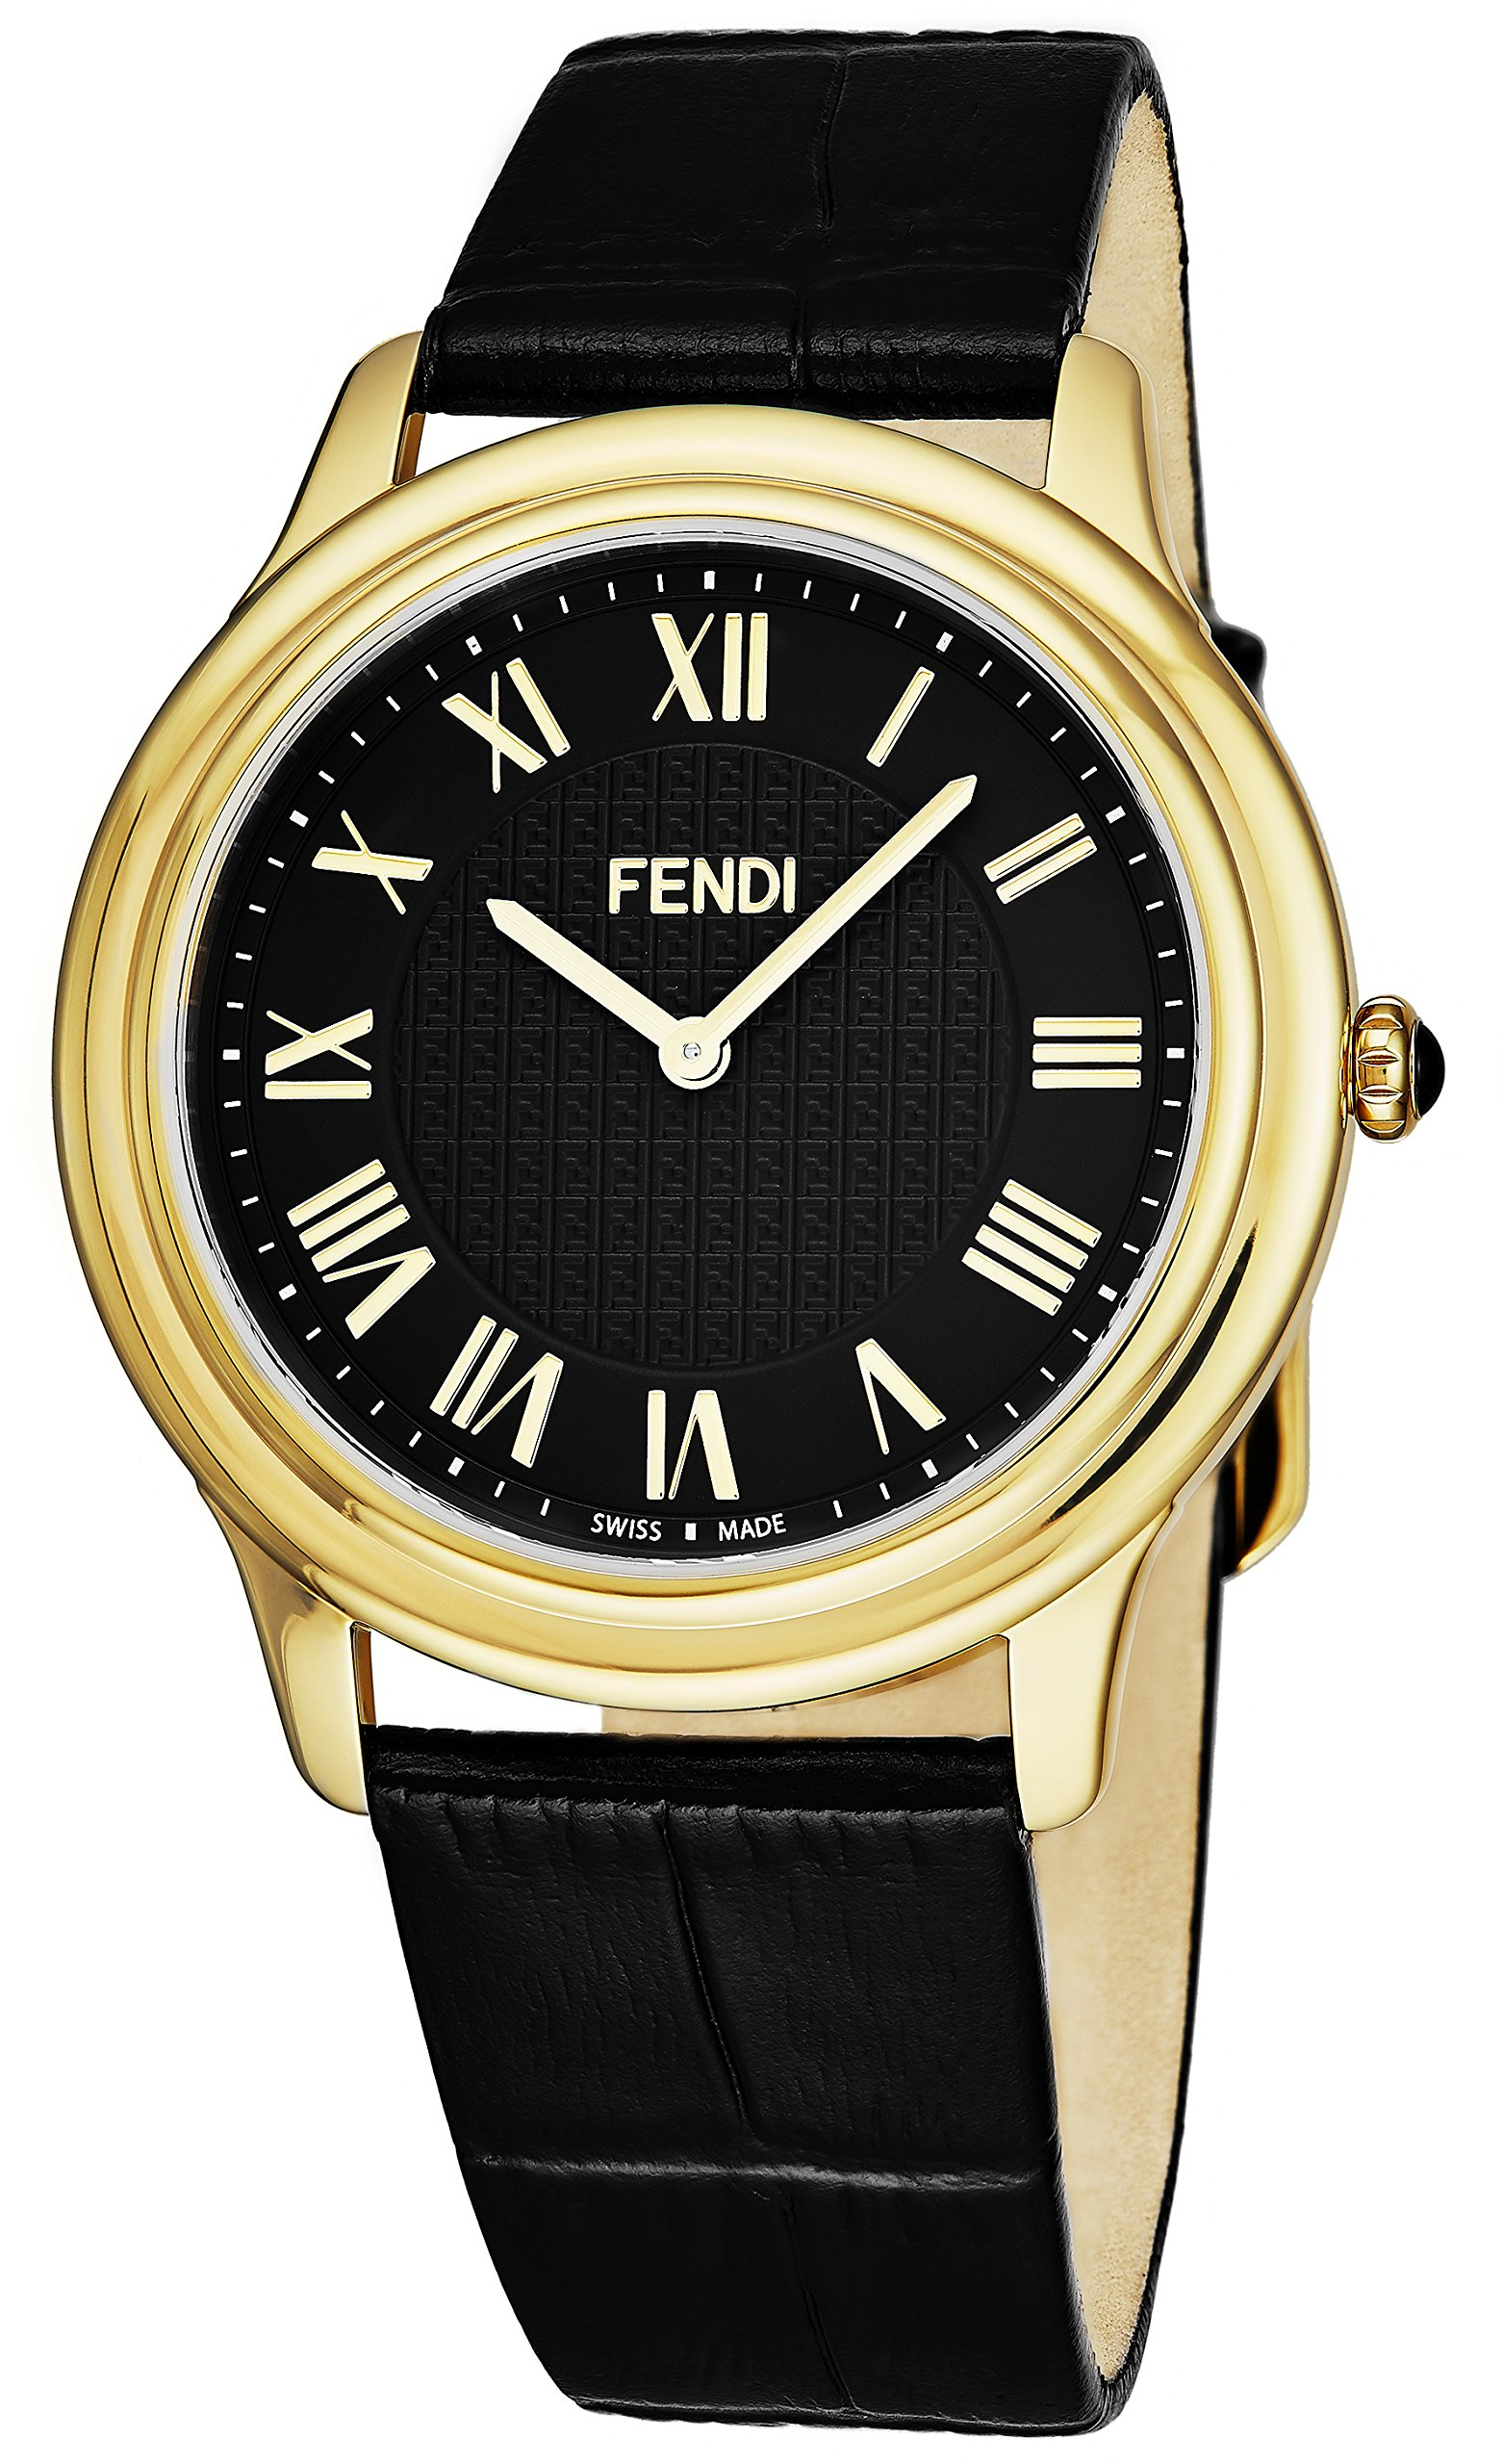 Fendi Classico Mens Classic Thin Yellow Plated Gold Watch - Black Face Analog Swiss Quartz Black Leather Band Dress Watch For Men F250411011